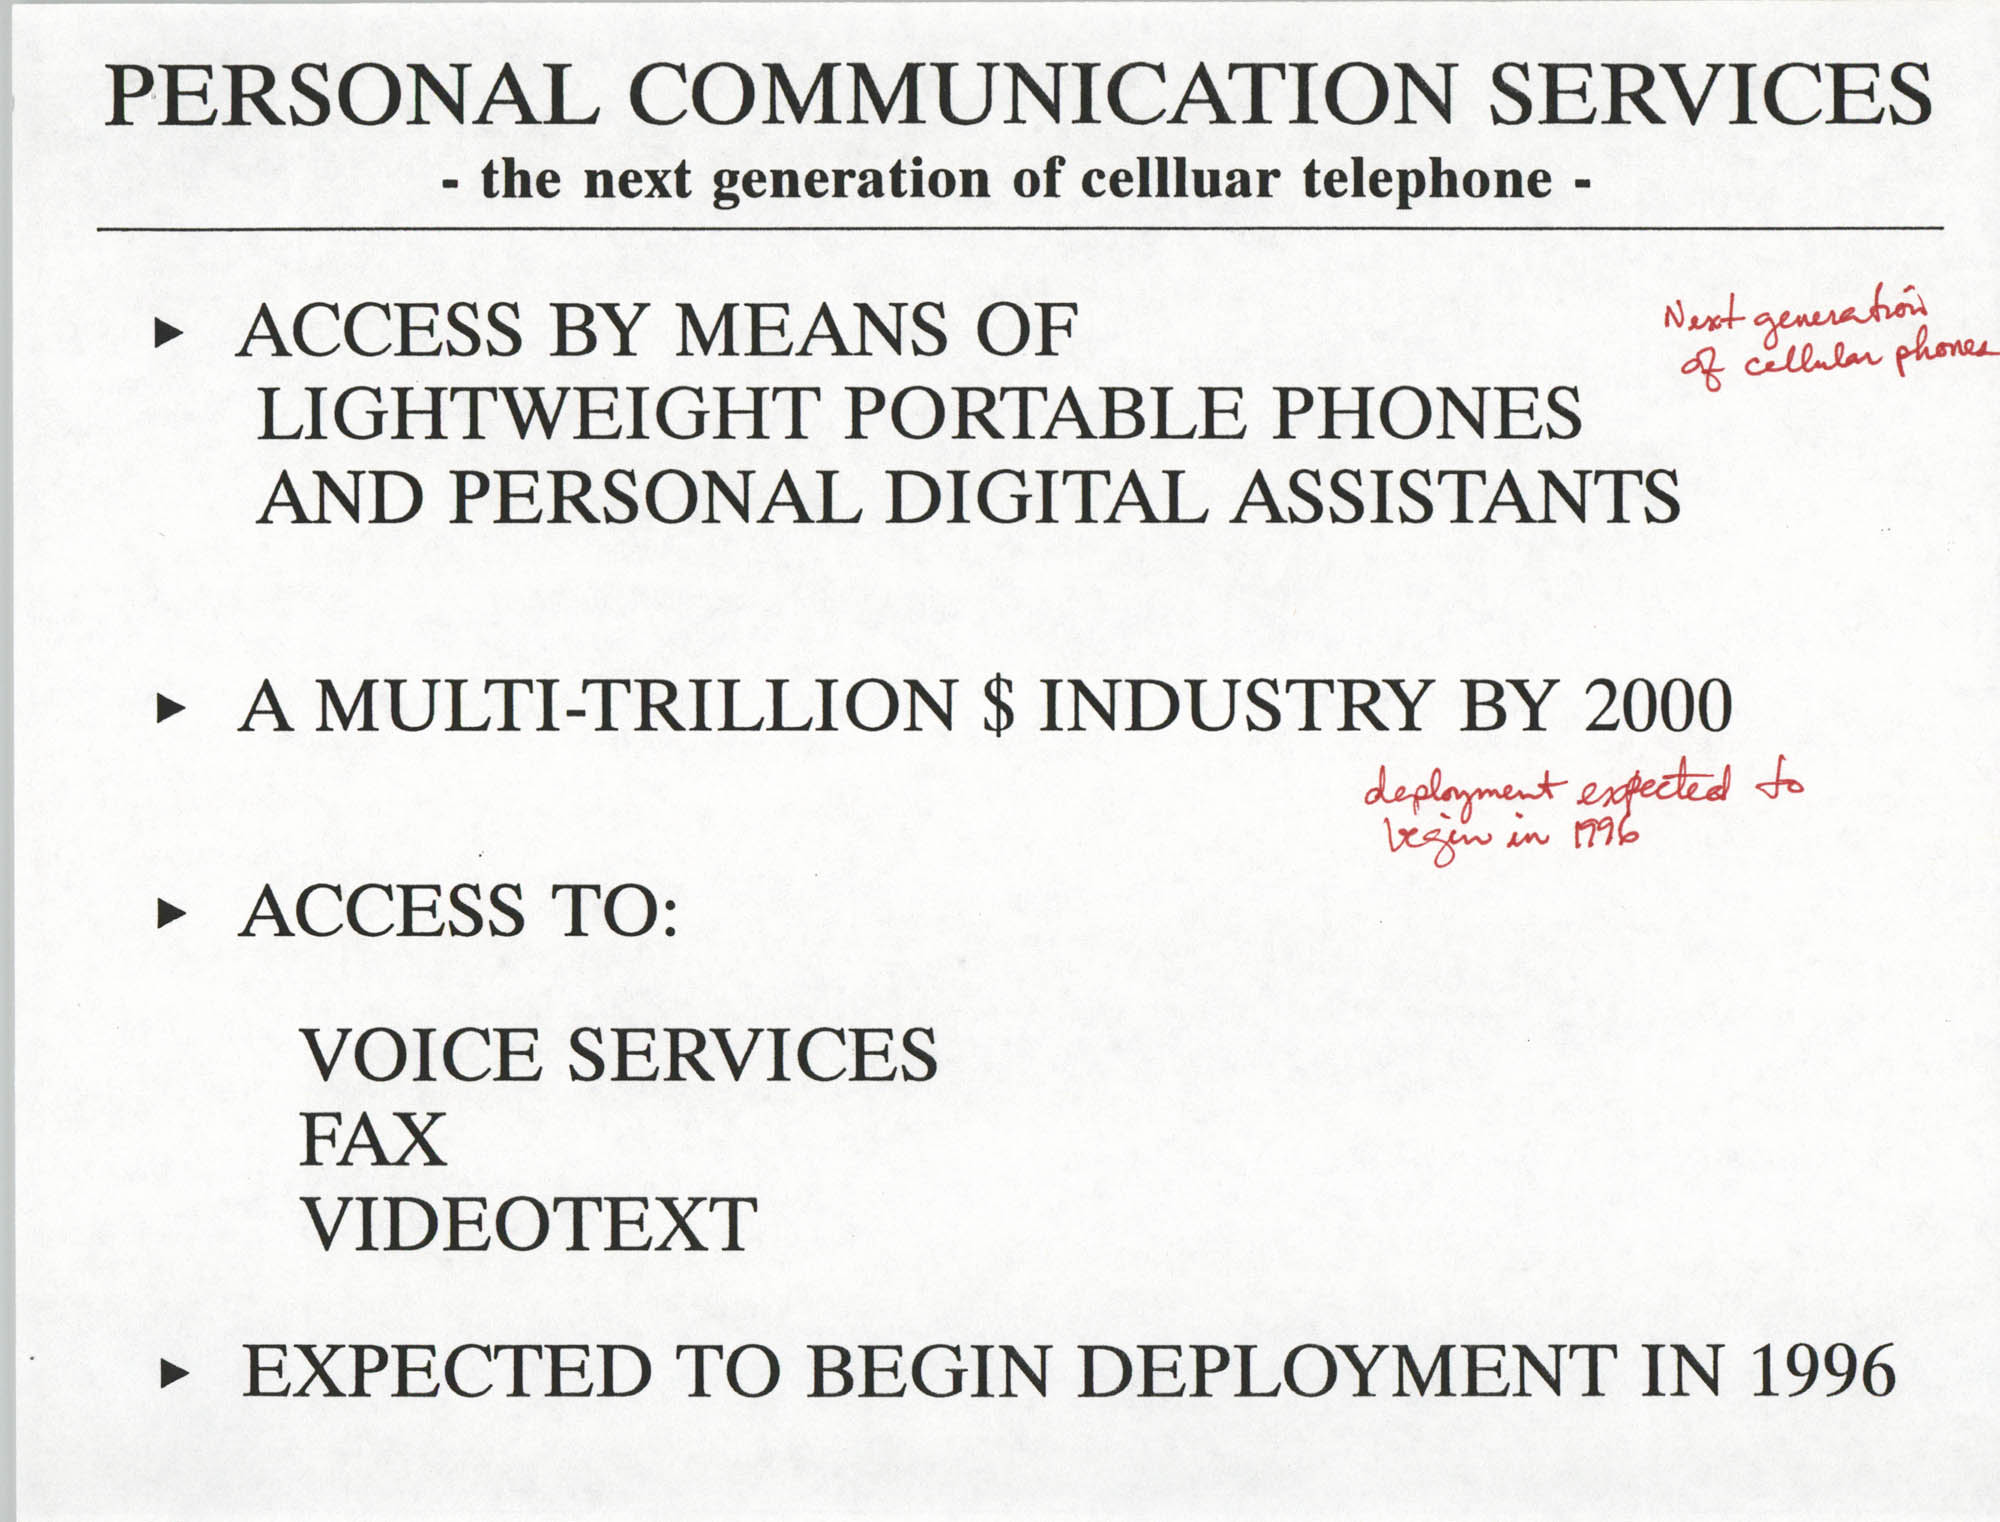 Developing an Agenda for the Information Superhighway, Anthony L. Pharr, May 20, 1994, Page 10